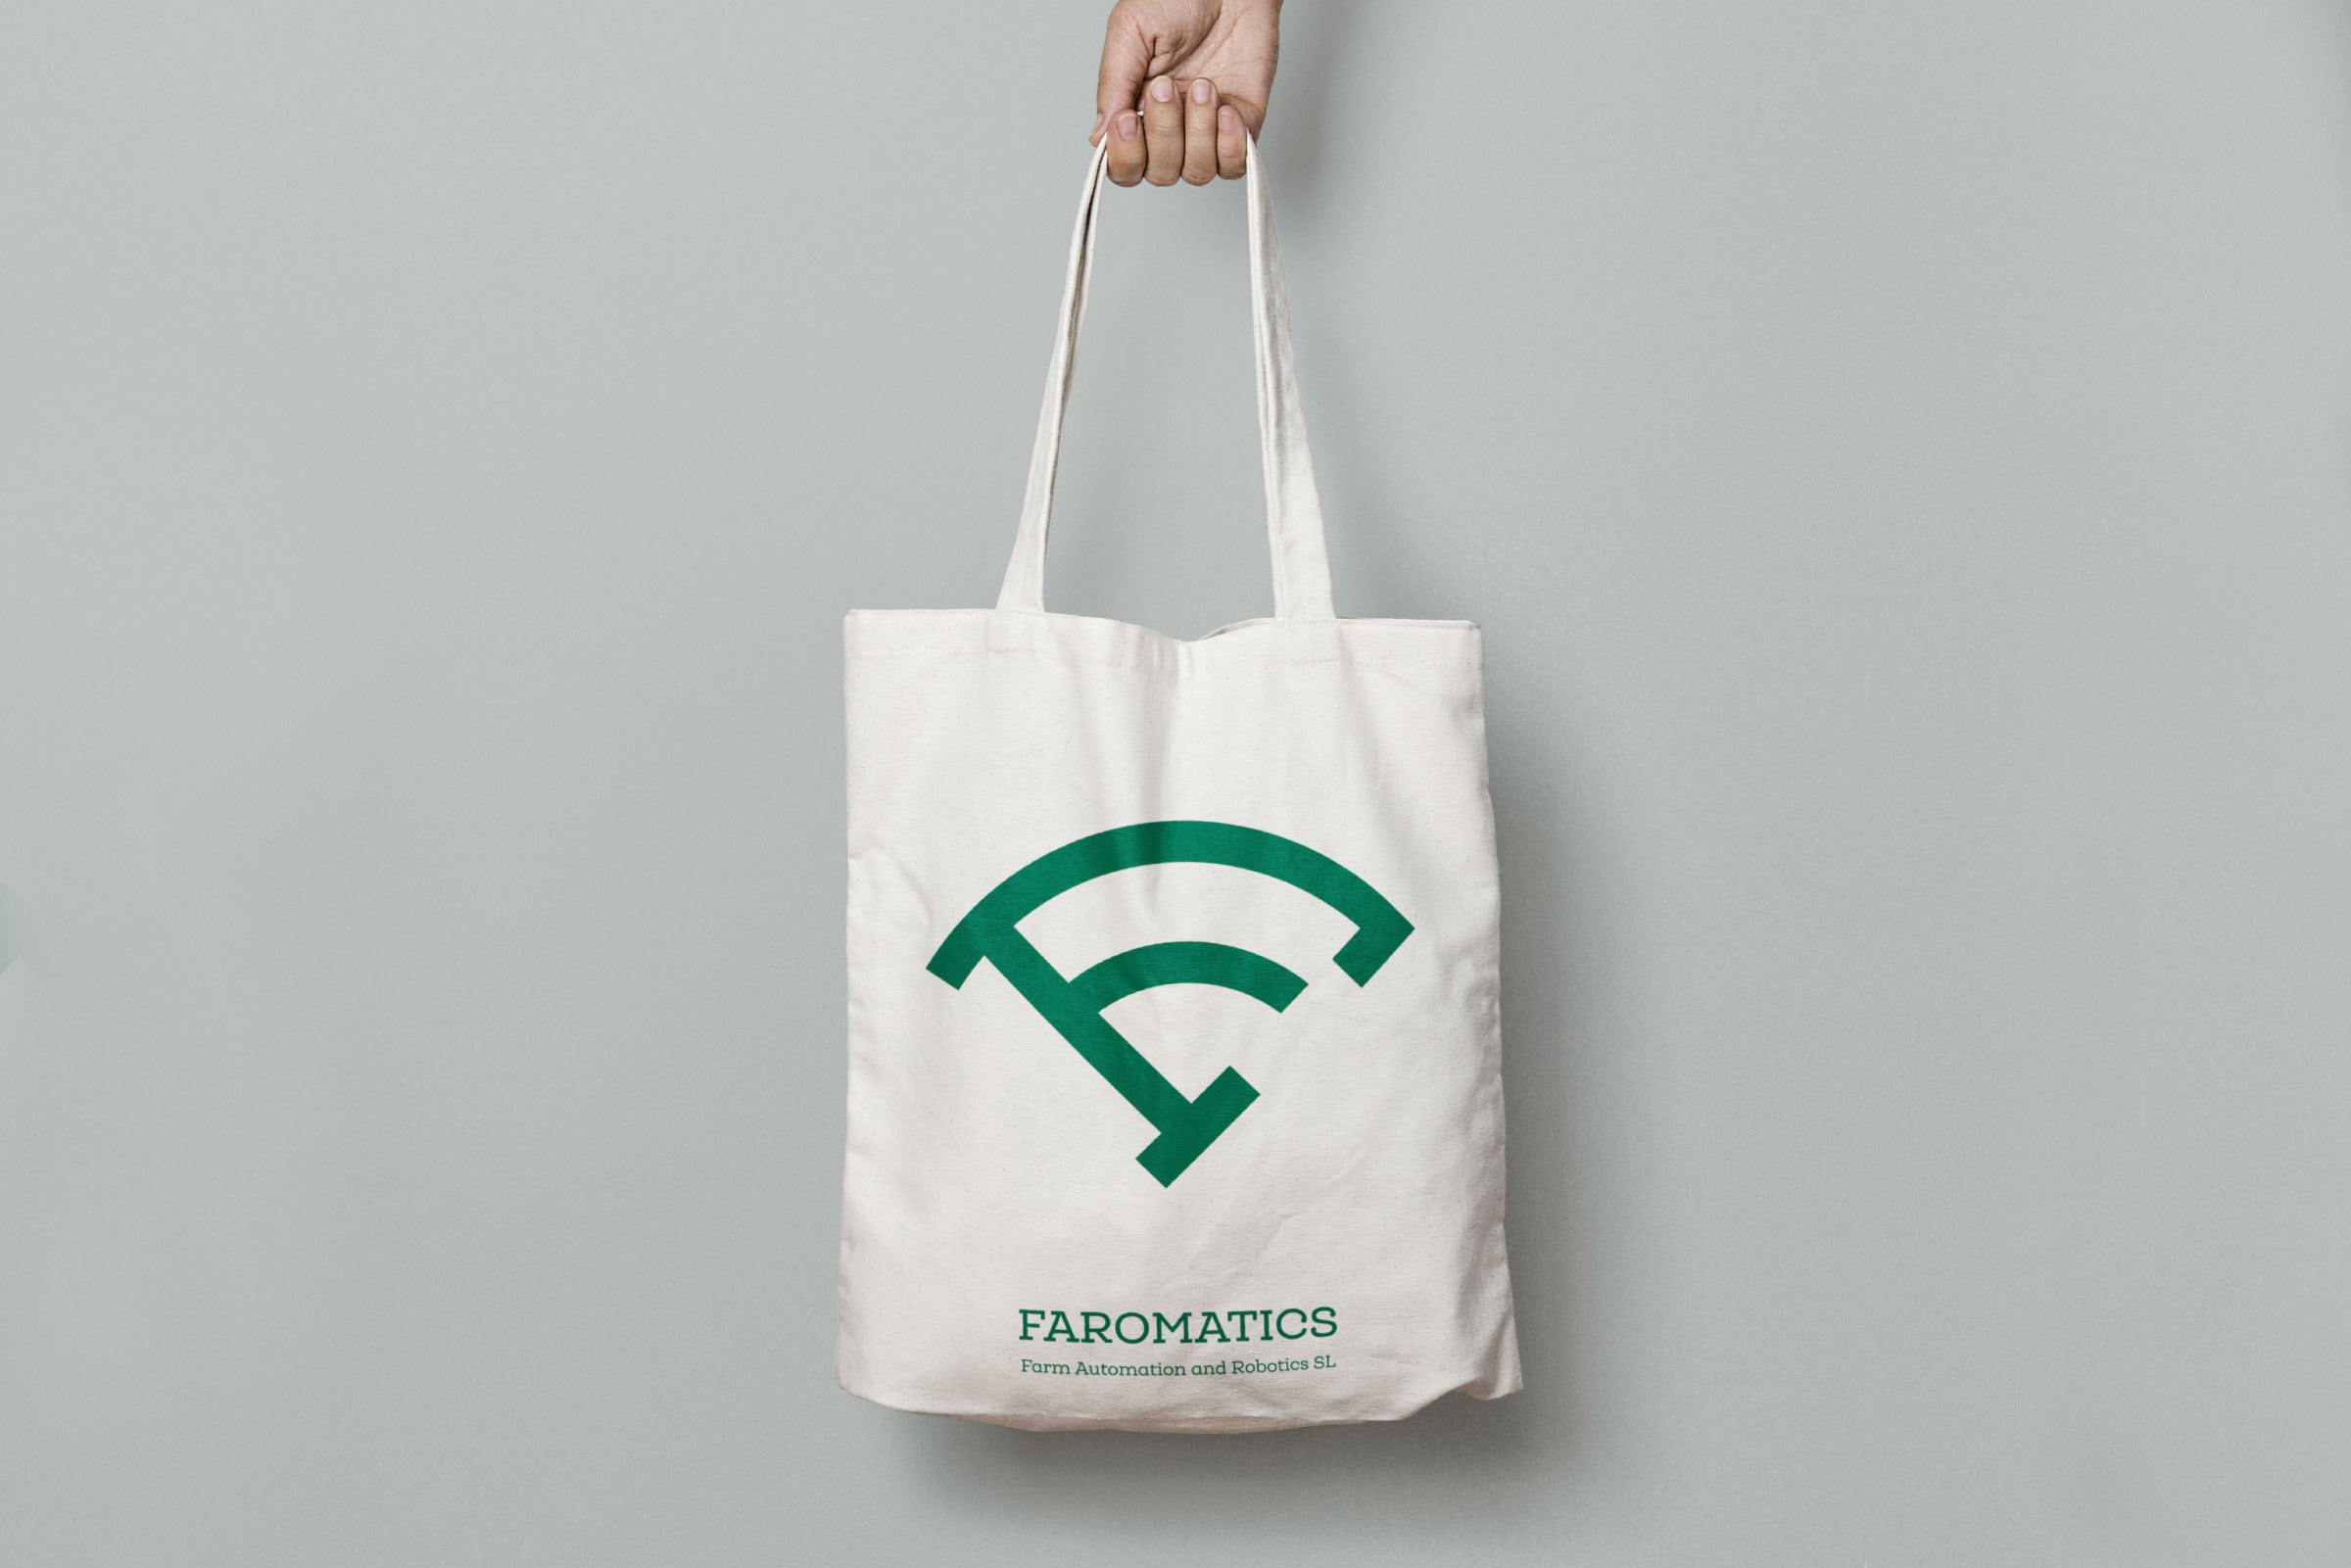 logo-faromatics-bag